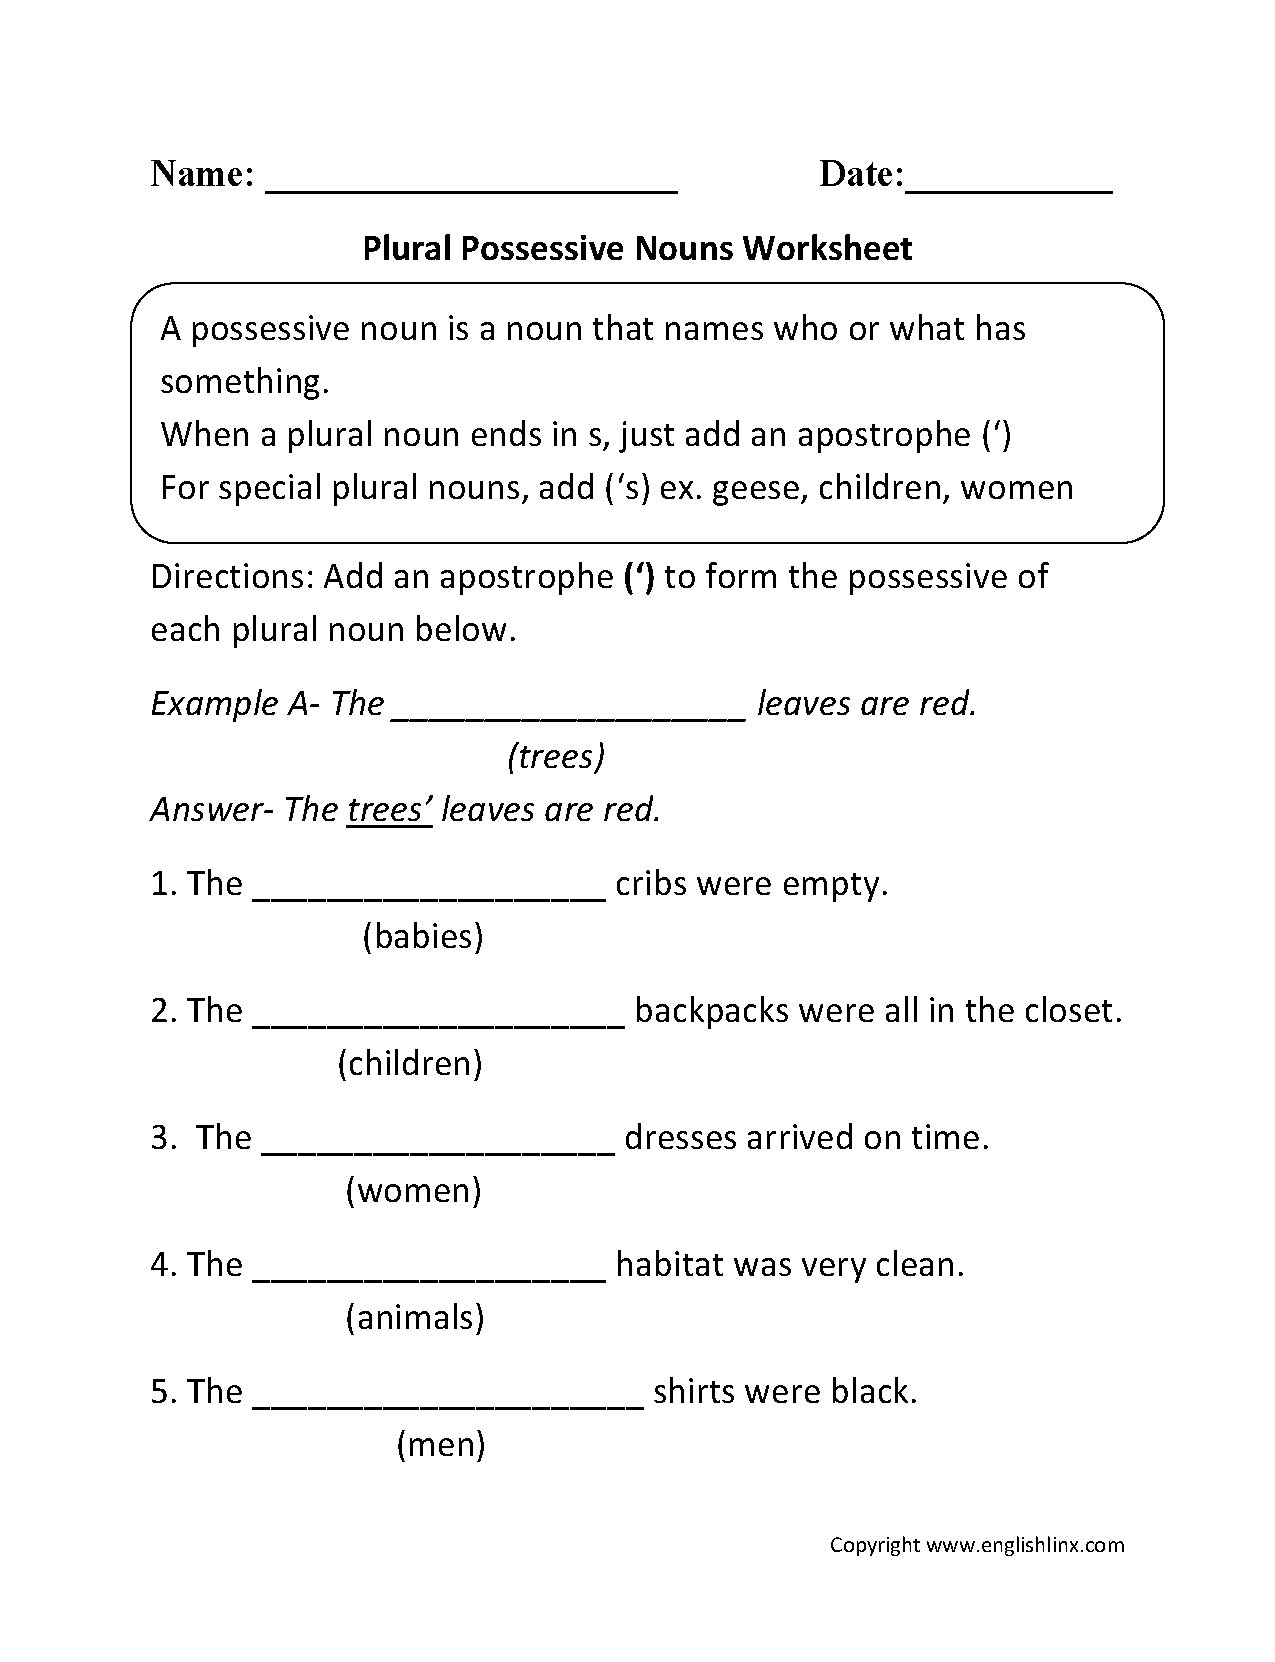 Aldiablosus  Pretty Nouns Worksheets  Possessive Nouns Worksheets With Engaging Possessive Nouns Worksheets With Archaic Wellness Worksheets Pdf Also Punjabi Alphabet Writing Worksheet In Addition Stellar Evolution Worksheet And Generate Equivalent Fractions Worksheet As Well As Compound Area Worksheet Additionally Math Times Tables Worksheets From Englishlinxcom With Aldiablosus  Engaging Nouns Worksheets  Possessive Nouns Worksheets With Archaic Possessive Nouns Worksheets And Pretty Wellness Worksheets Pdf Also Punjabi Alphabet Writing Worksheet In Addition Stellar Evolution Worksheet From Englishlinxcom